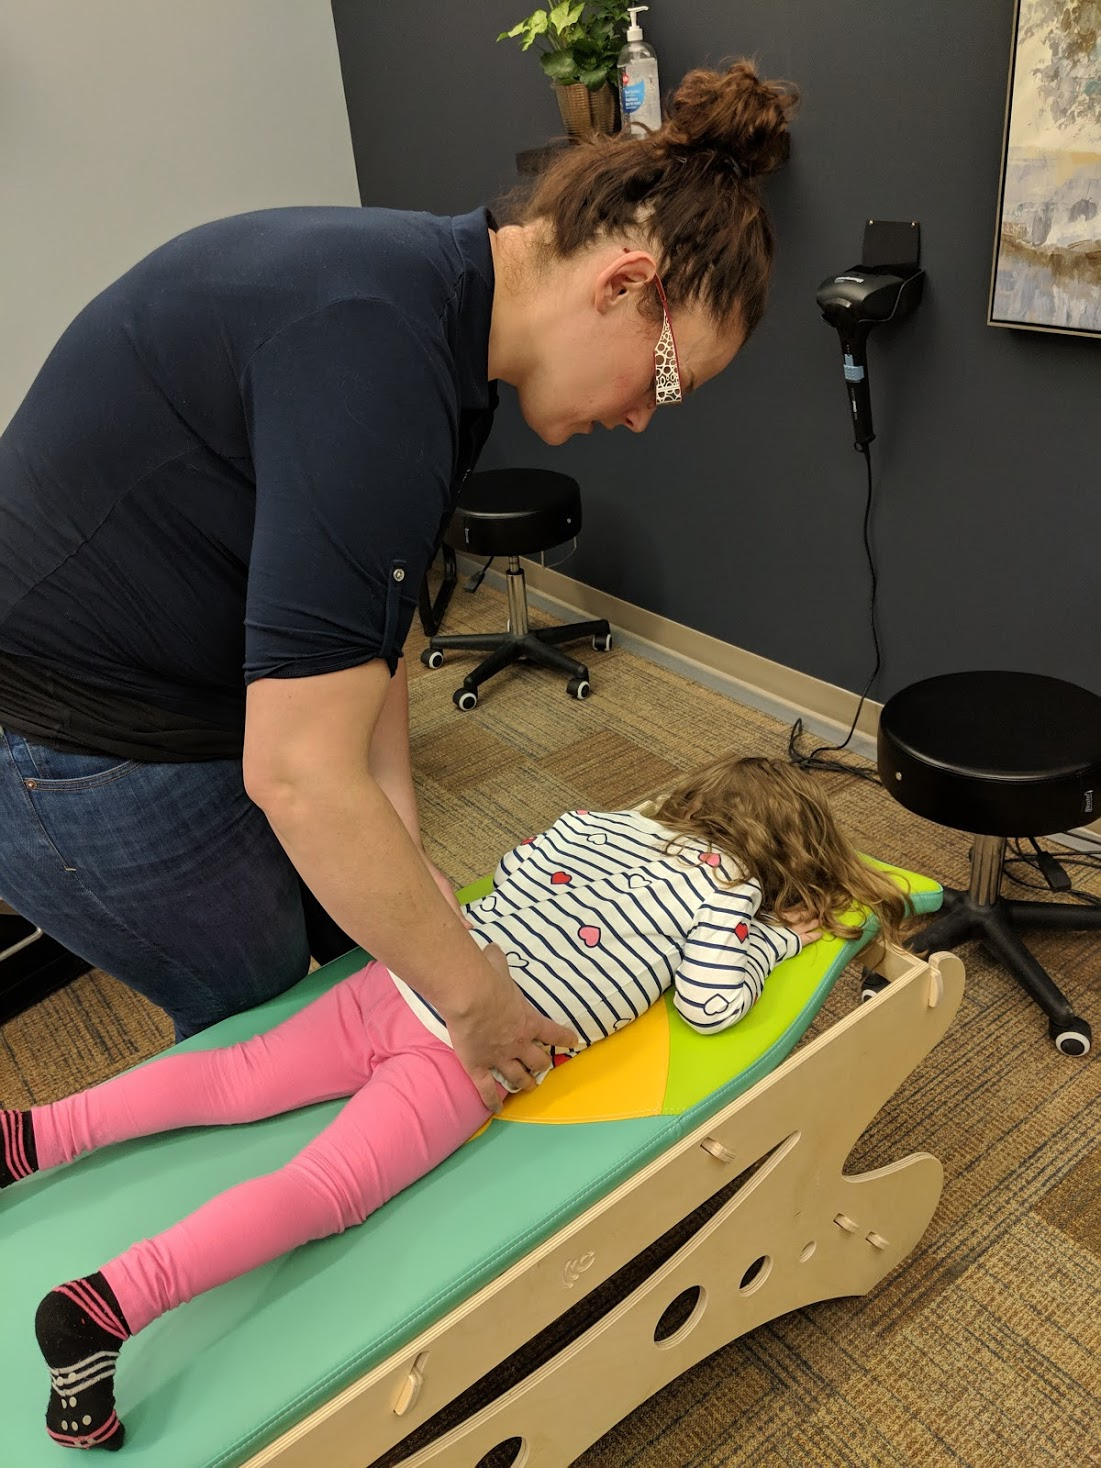 adjustment on the pediatric table